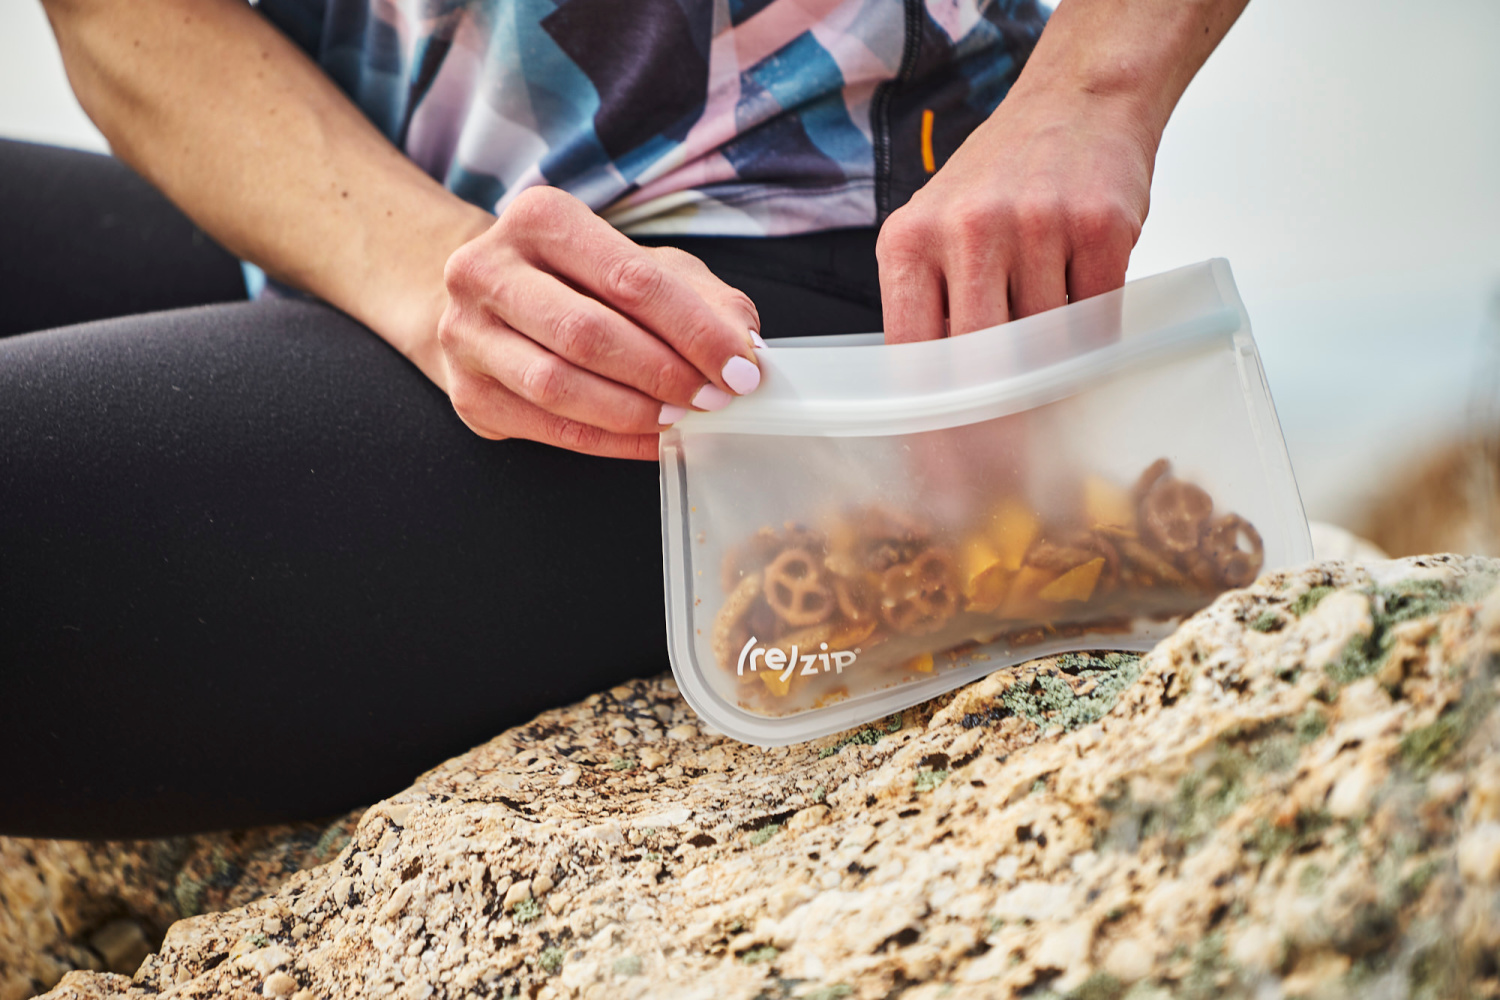 What are the best reusable bags for hiking snacks? In this post I review all the reusable bags I've tried and round up my favorites for hiking snacks! www.amandaoutside.com